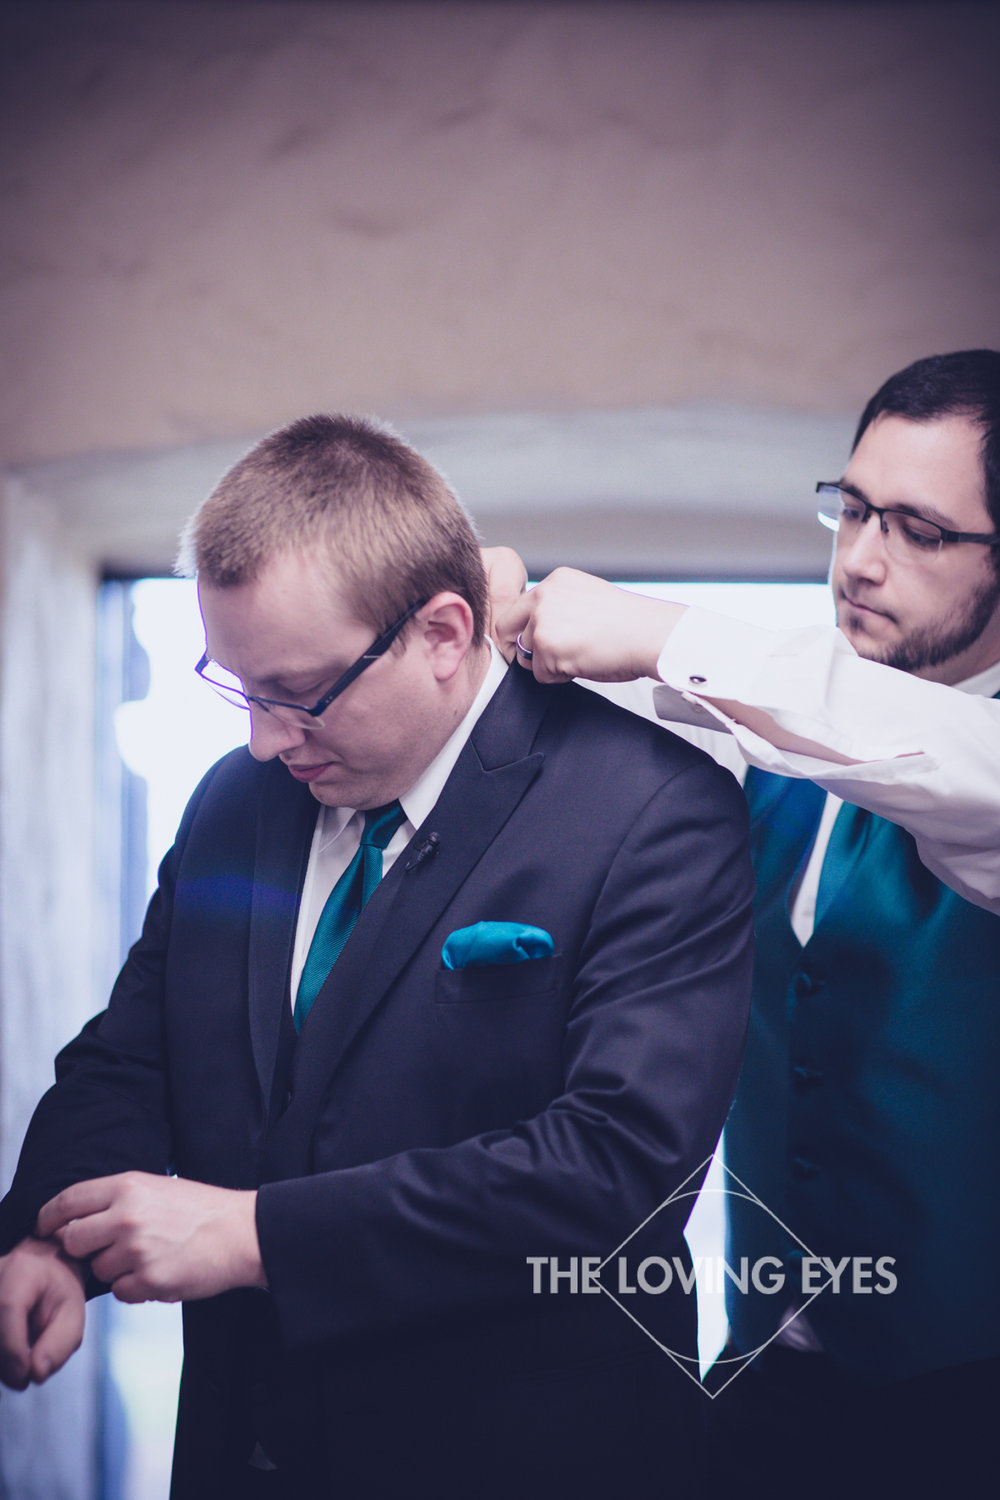 Groom and Best Man Getting Ready Before Wedding Ceremony